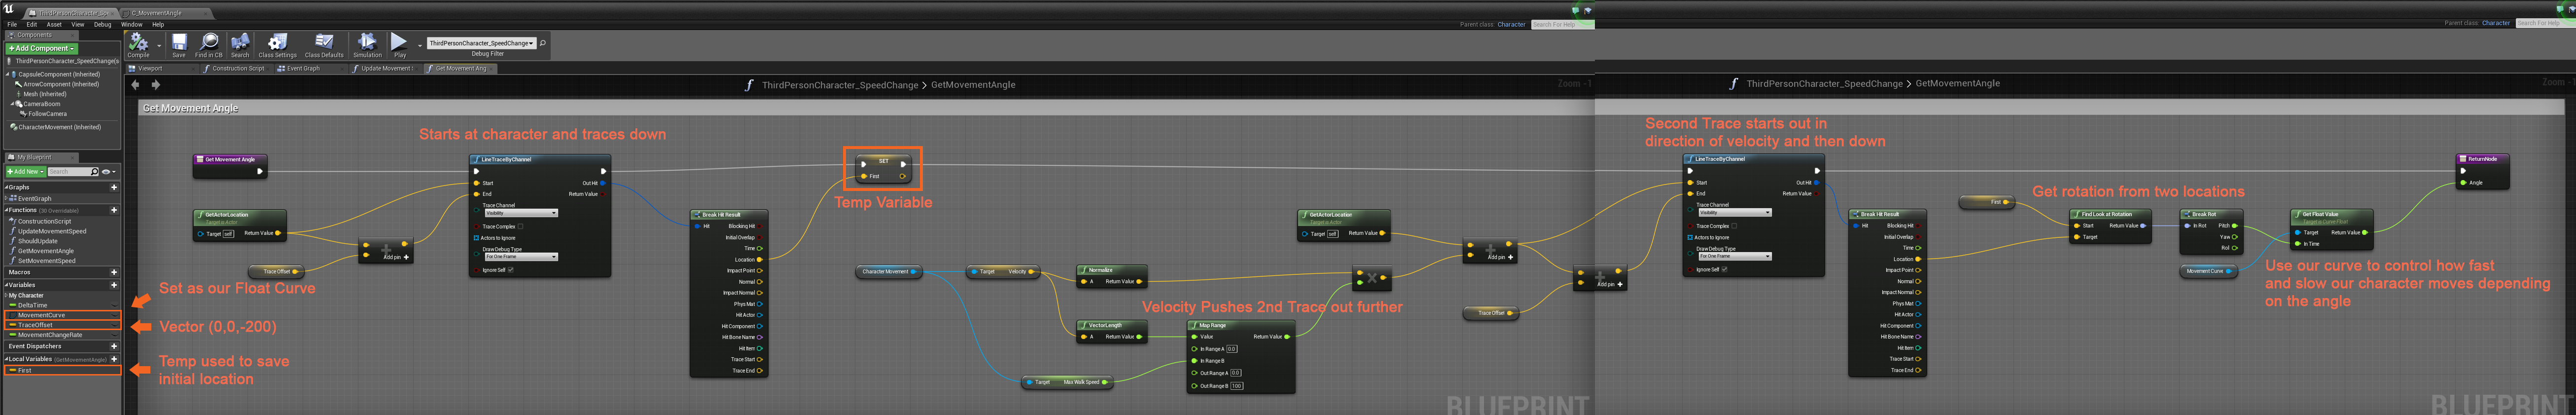 Unreal Engine 4: Let's Make: Character Speed based on Slope